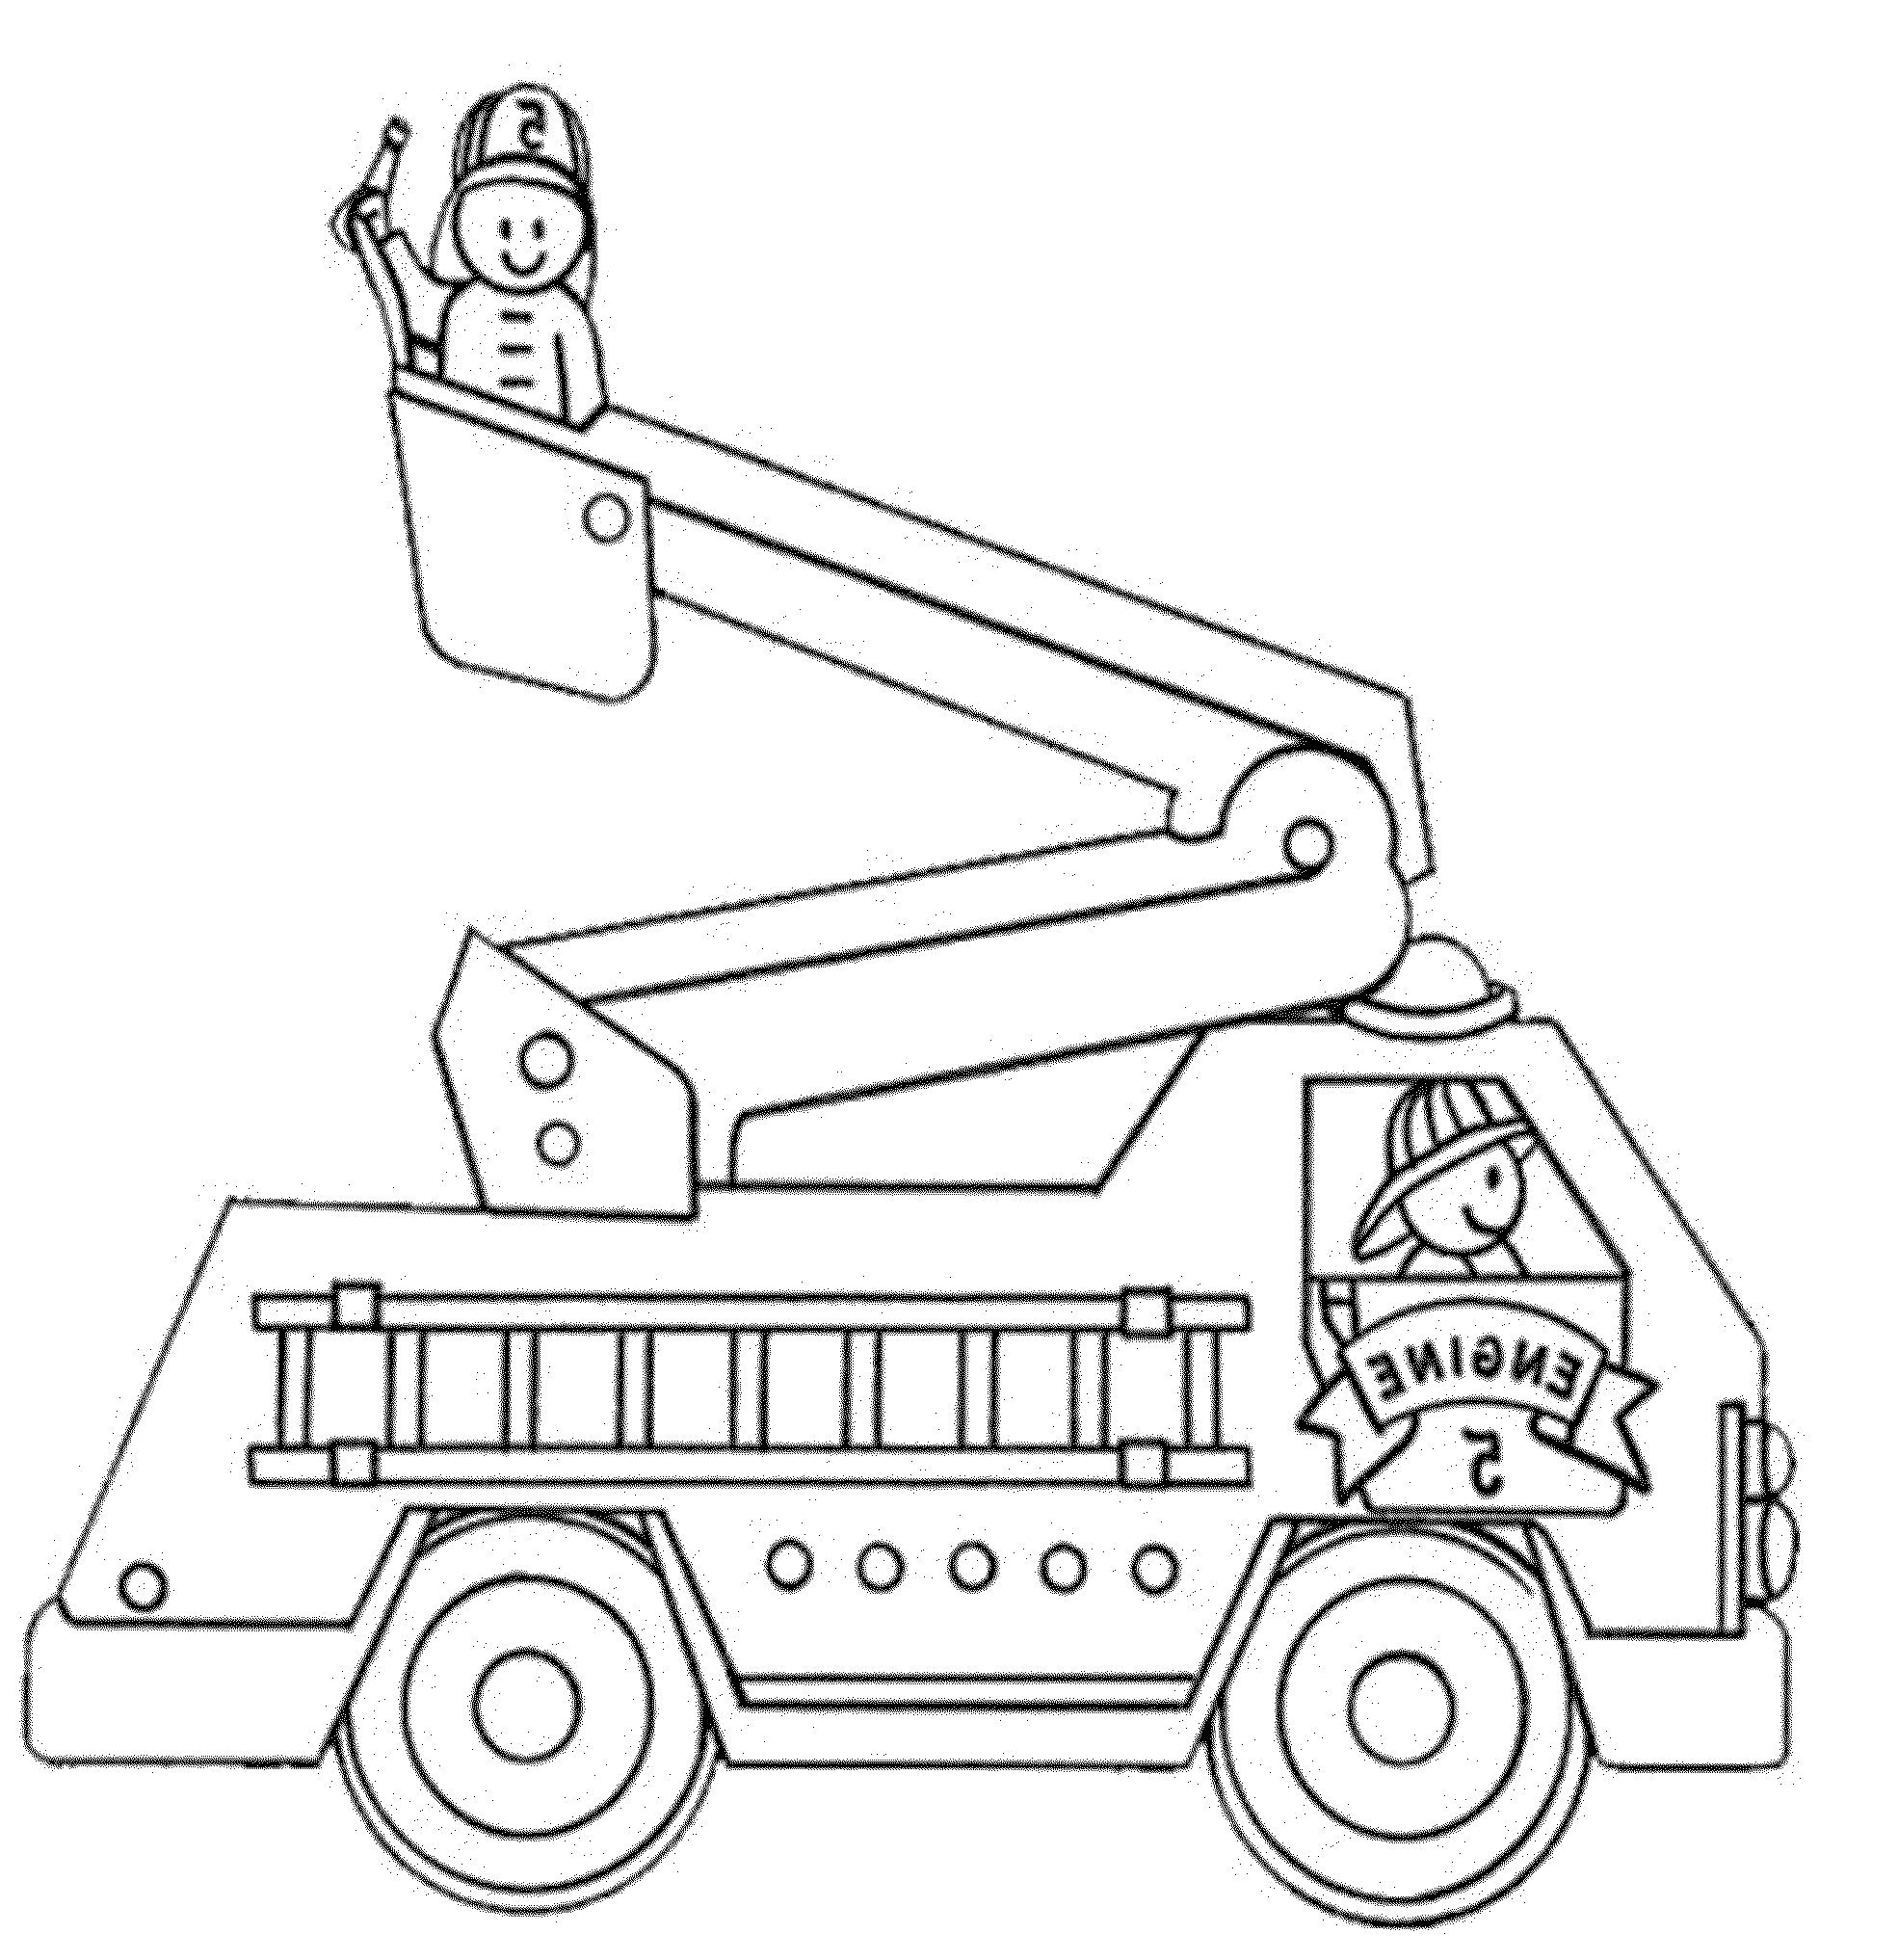 free fire truck coloring pages to print fire truck coloring pages getcoloringpagescom print free coloring truck to fire pages